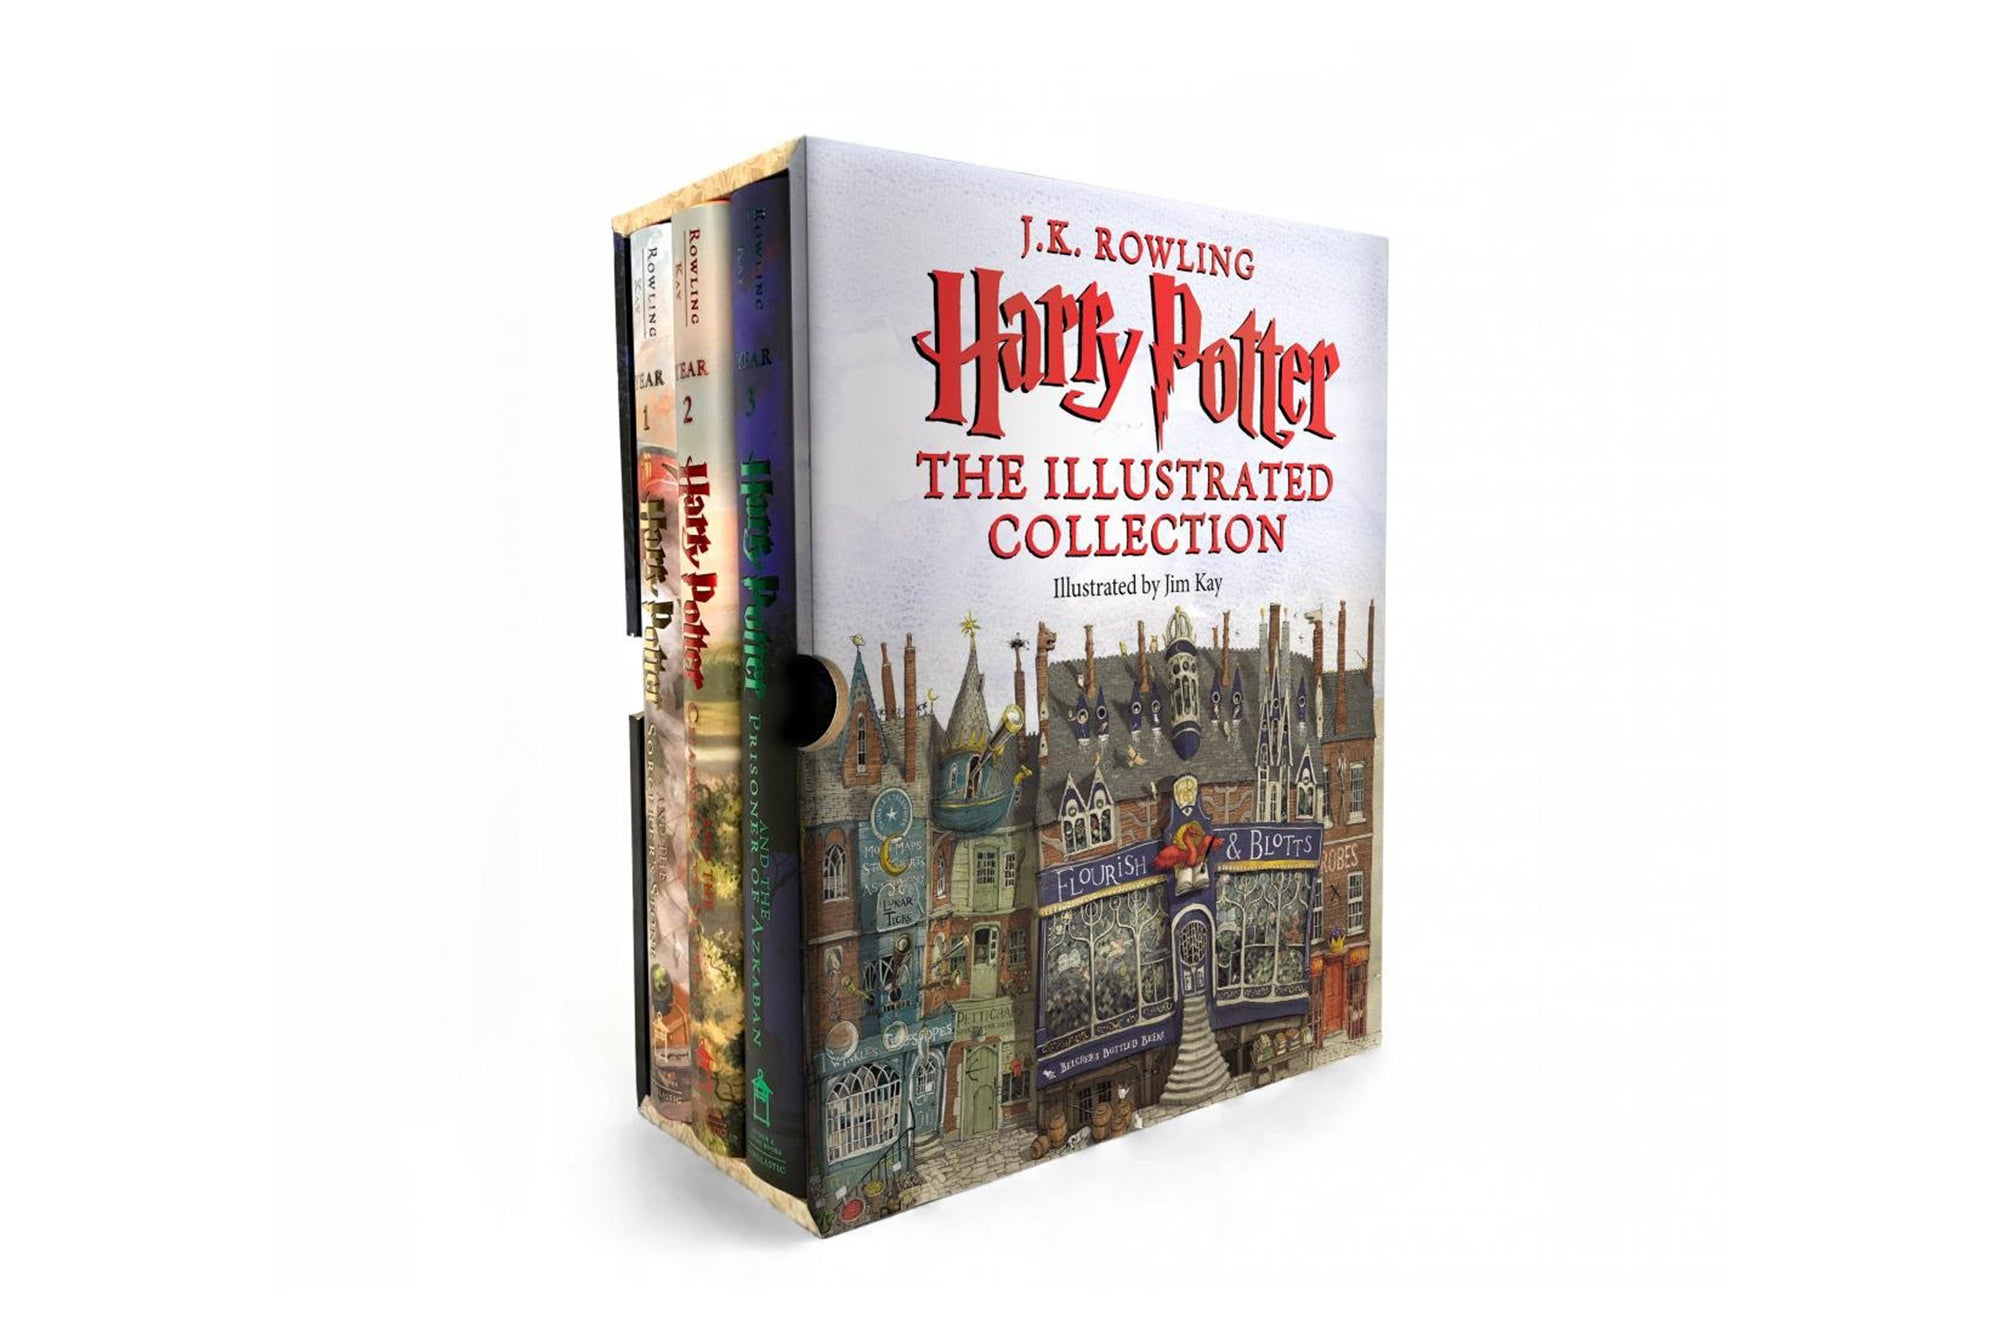 Harry Potter: The Illustrated Collection Books 1-3 Boxed Set.